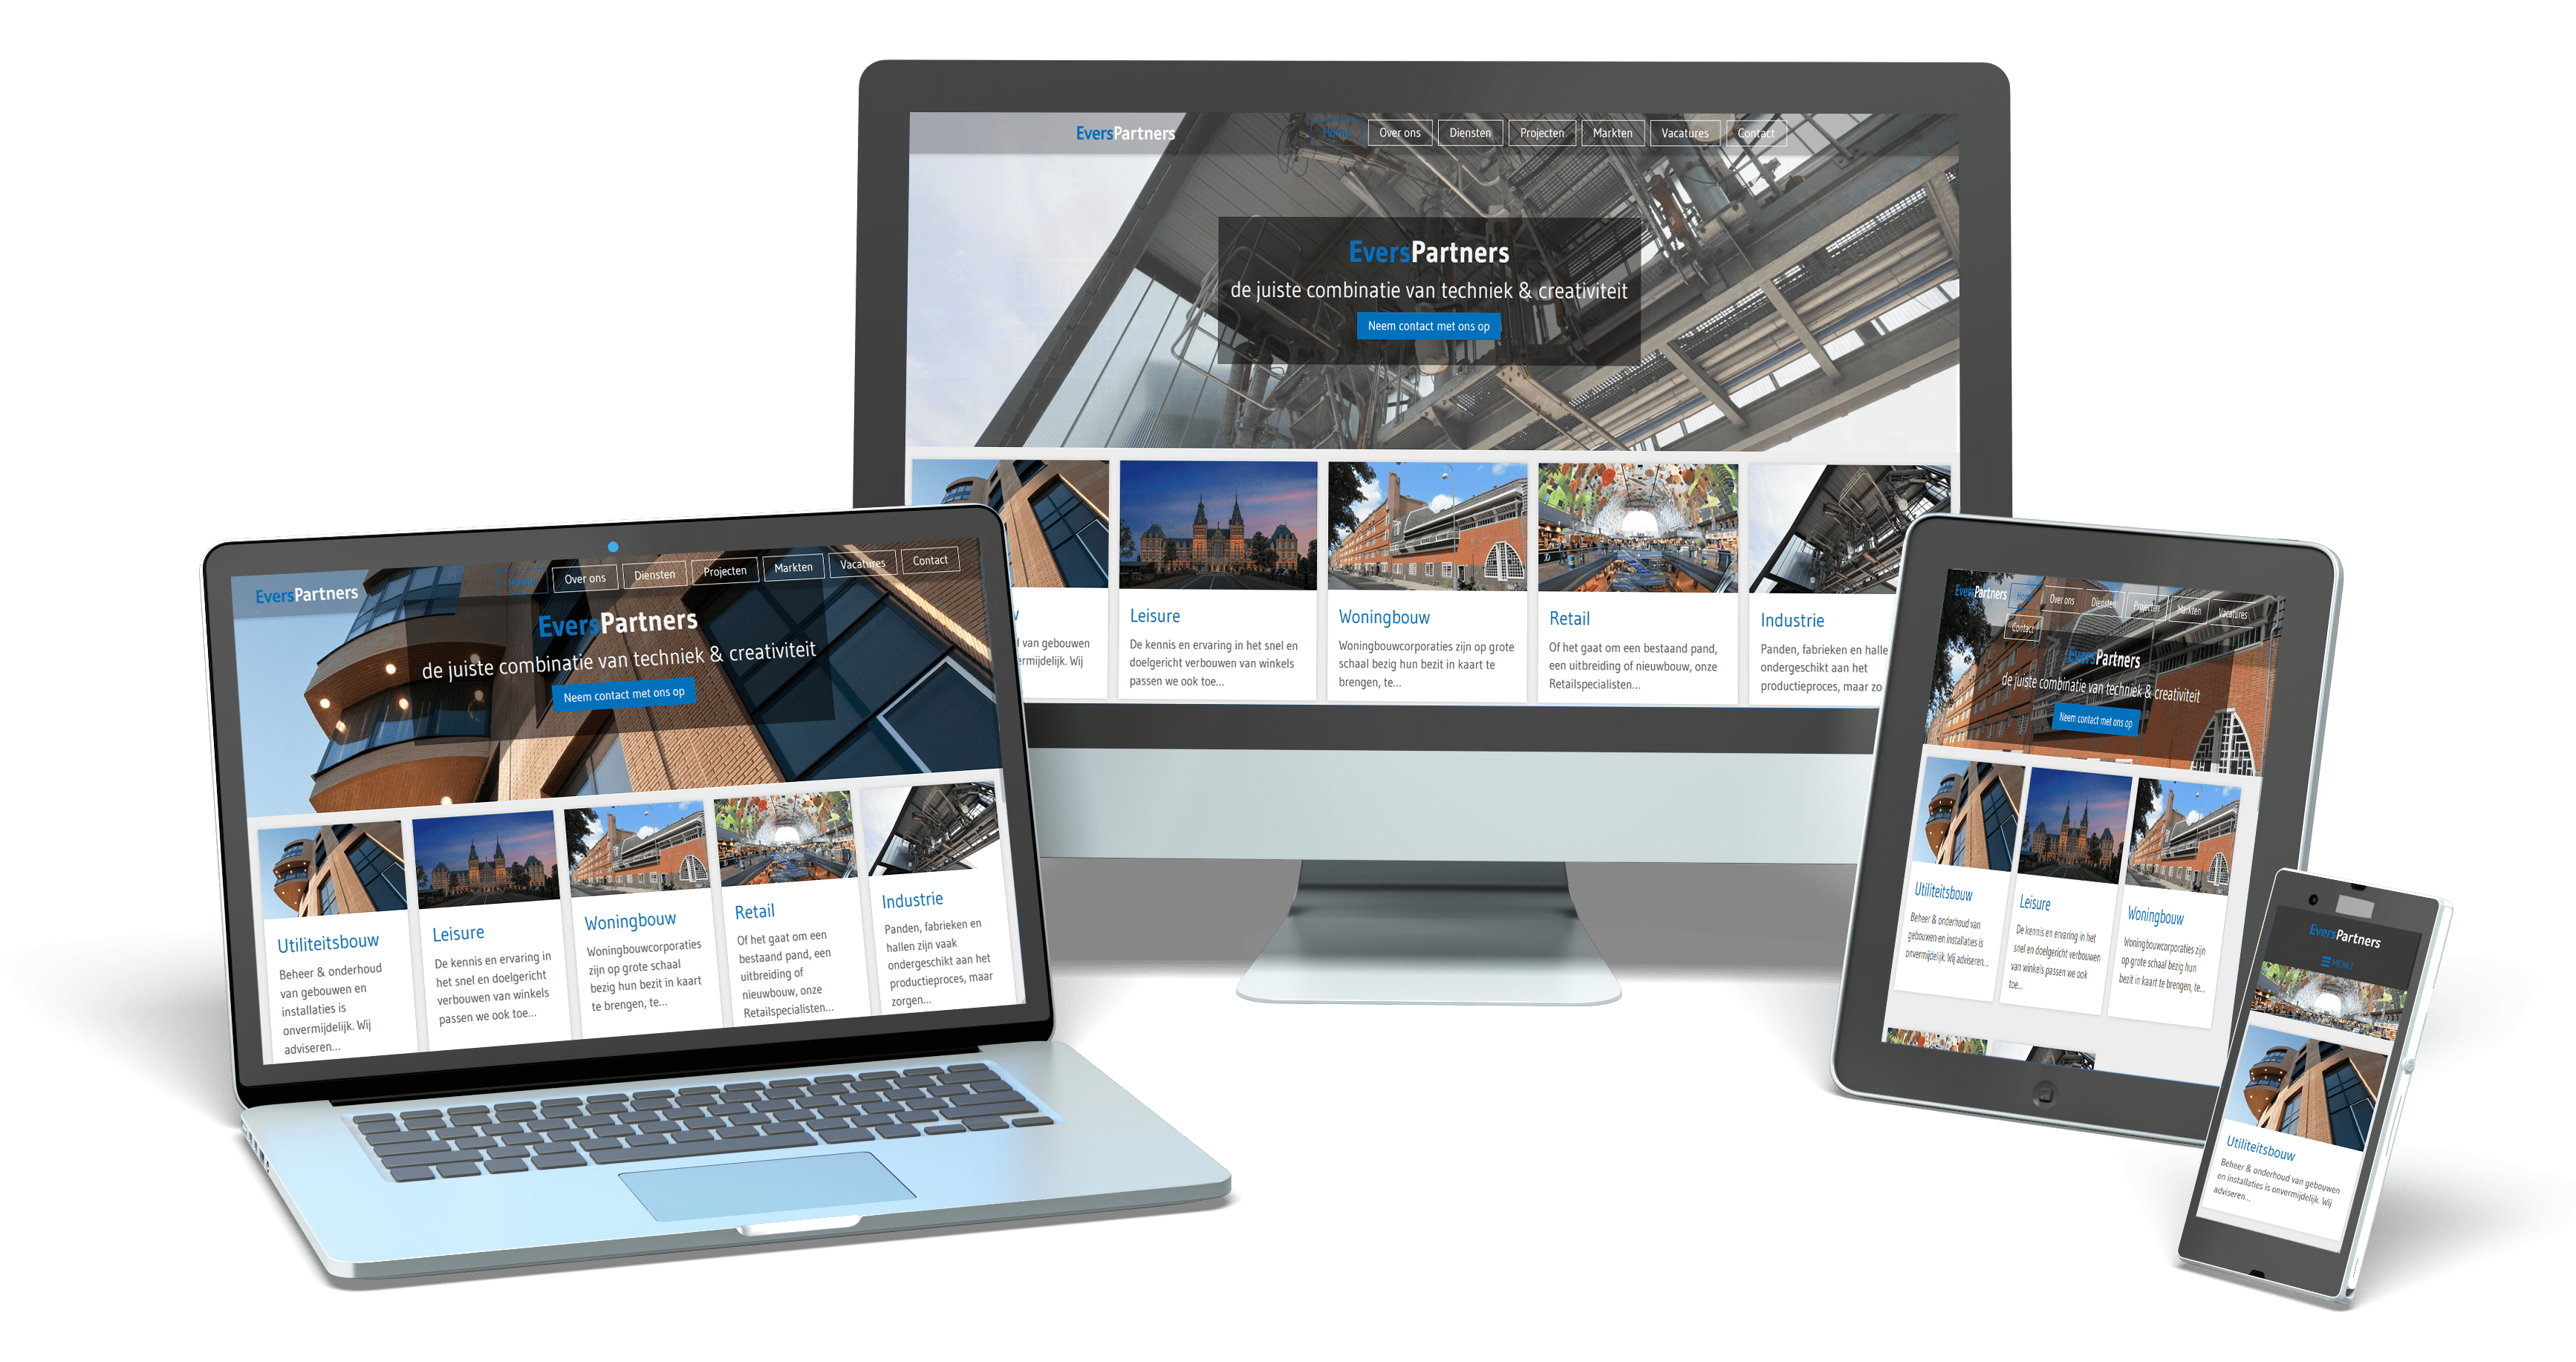 everspartners responsive